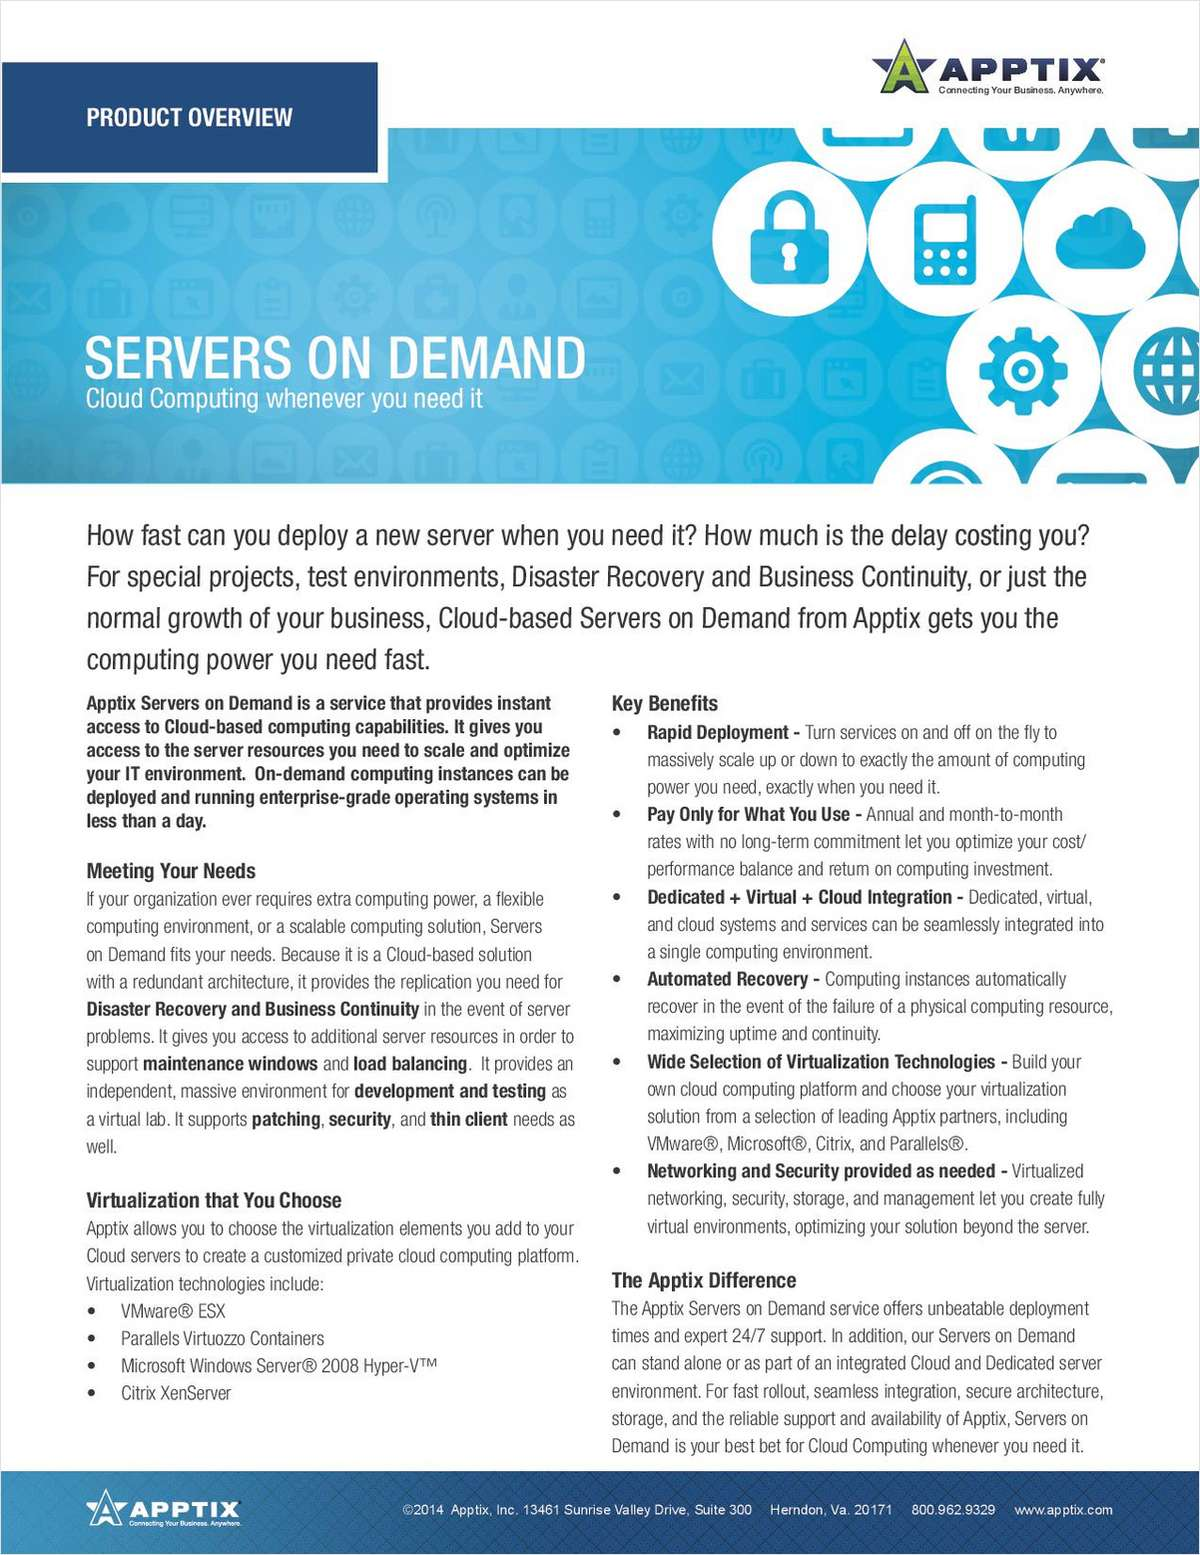 Servers on Demand